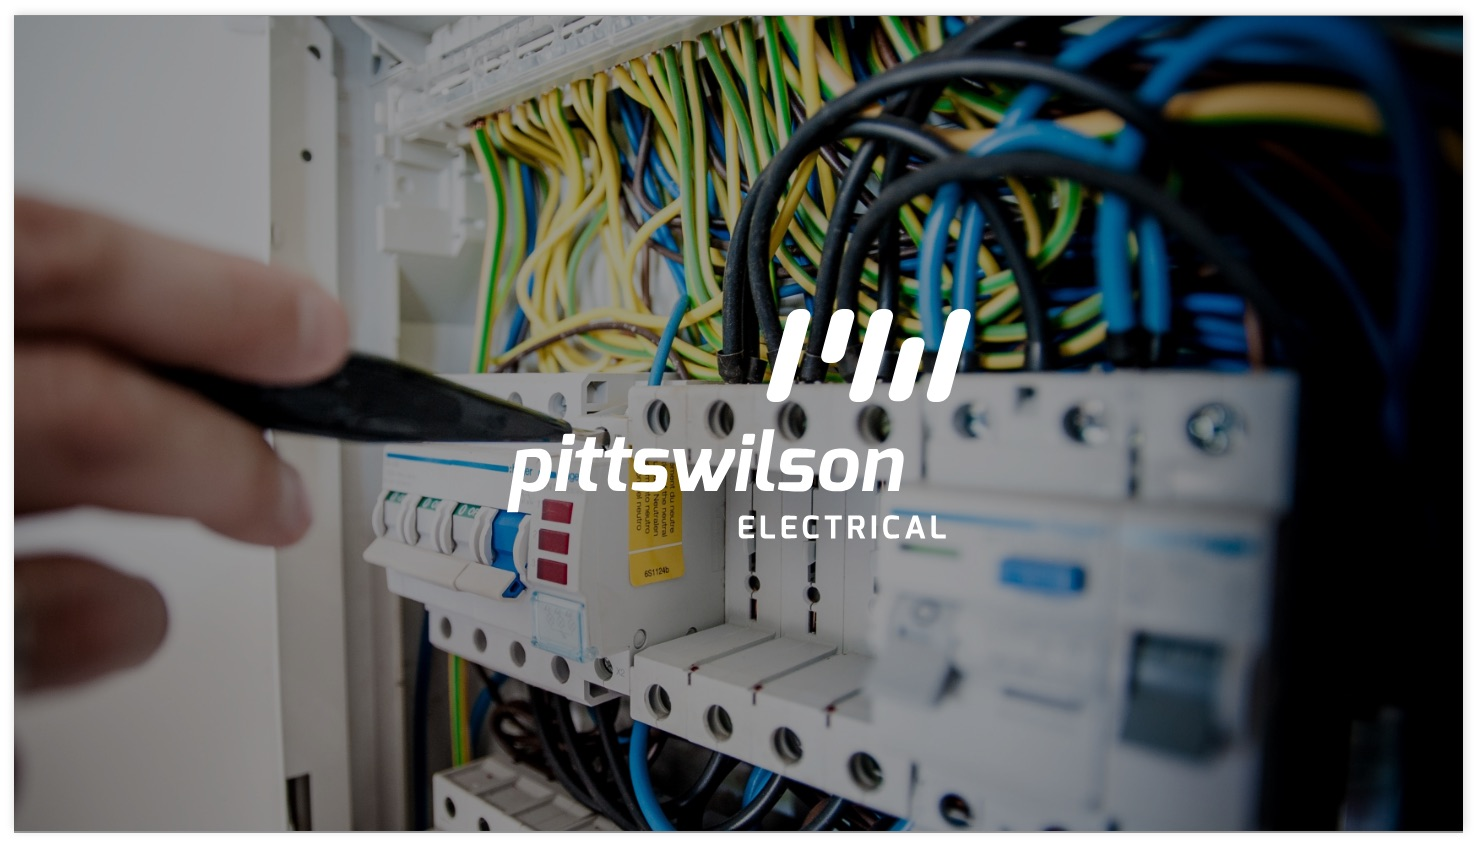 Pitts Wilson Electrical logo